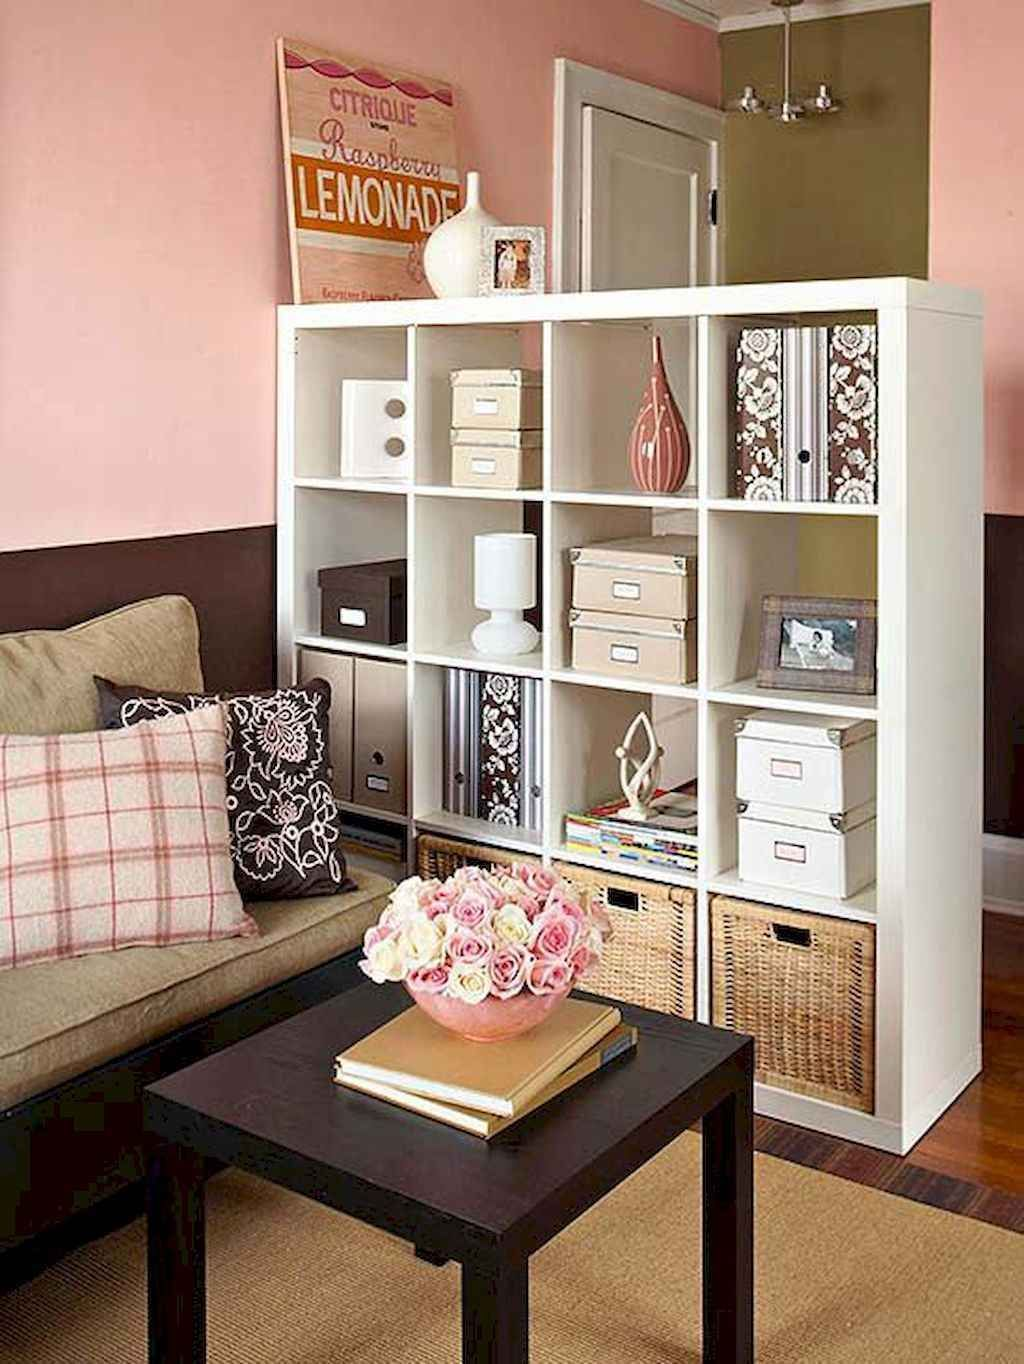 55 First Apartment Decorating Ideas on A Budget #firstapartment